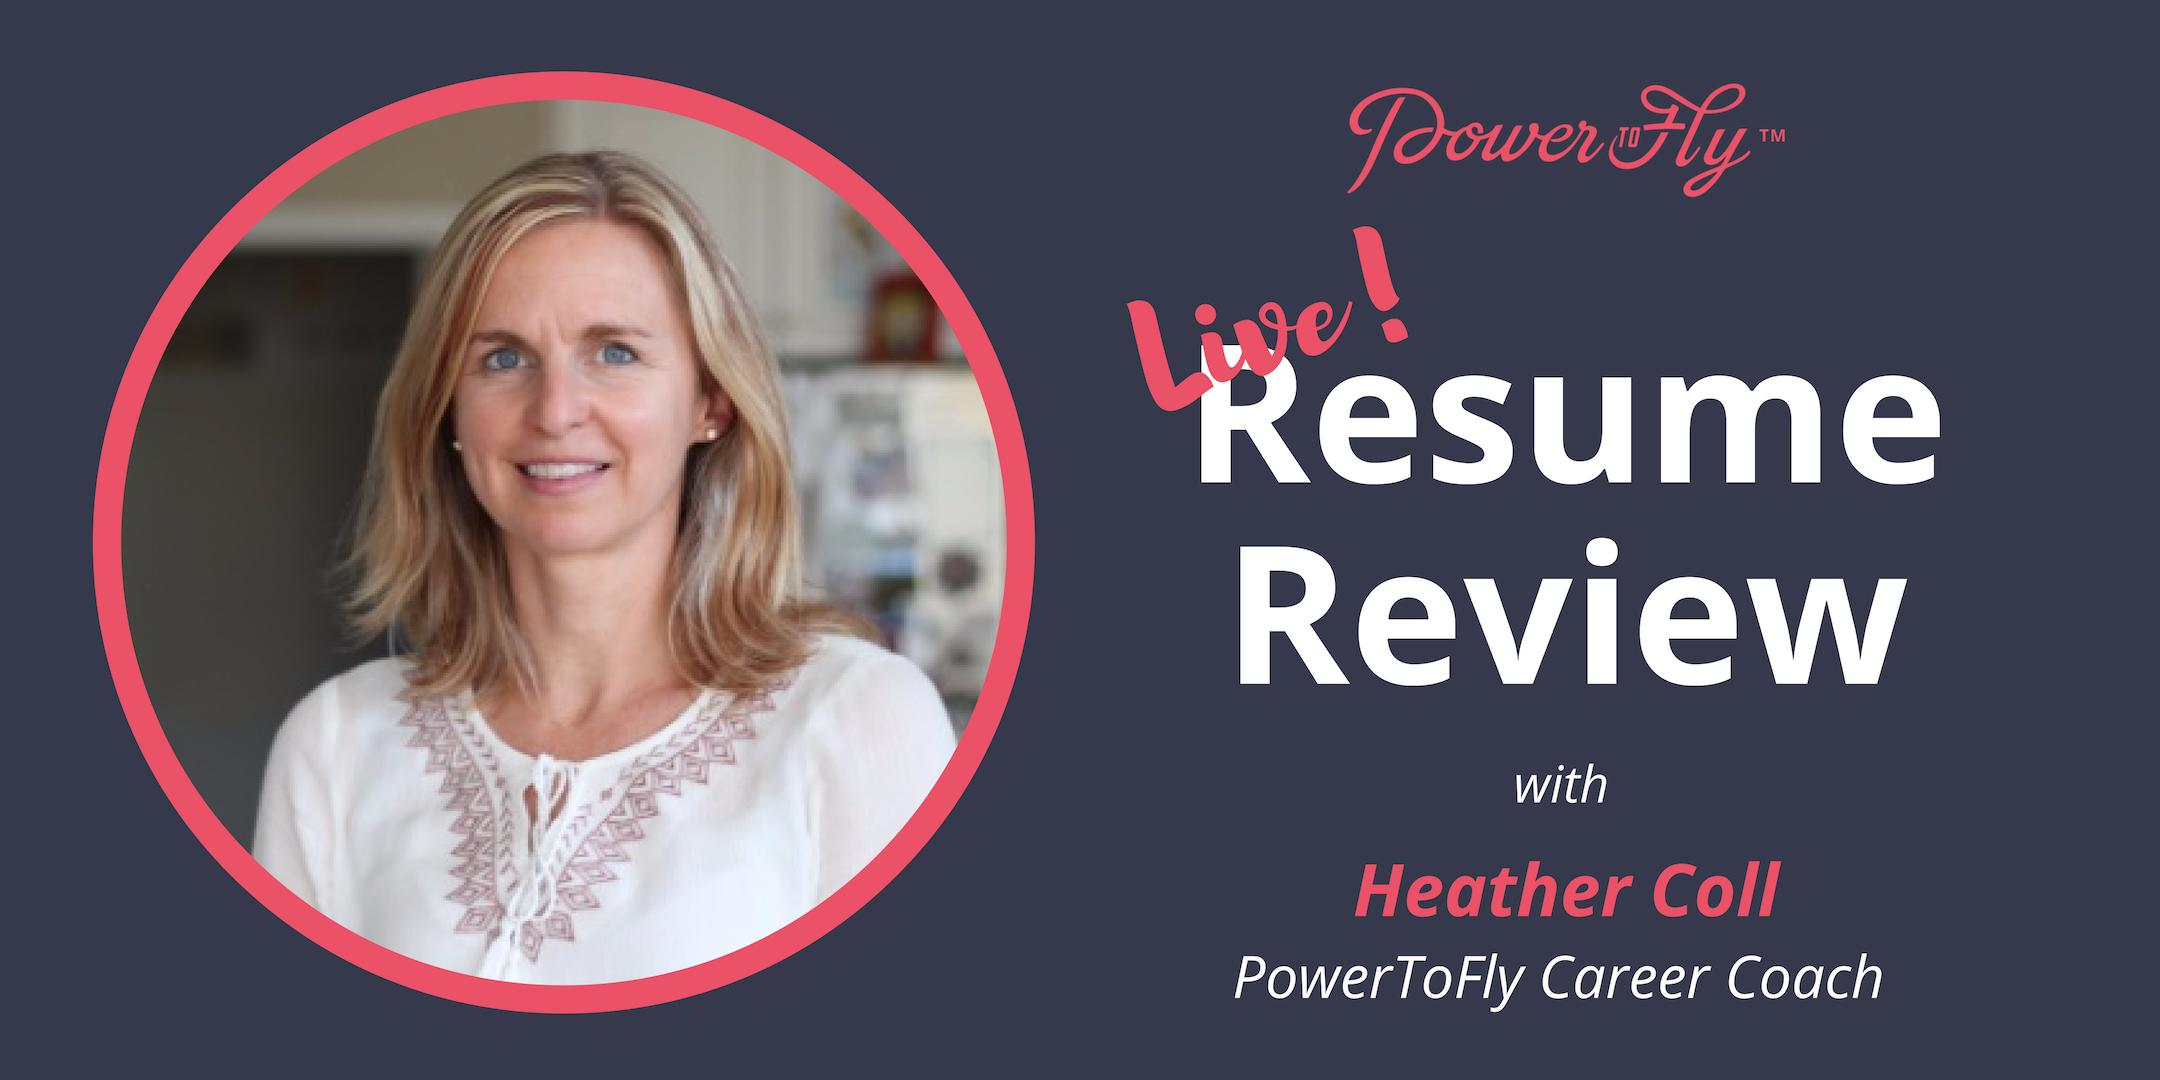 *LIVE* Resume Review With PowerToFly Career Coach 4/11